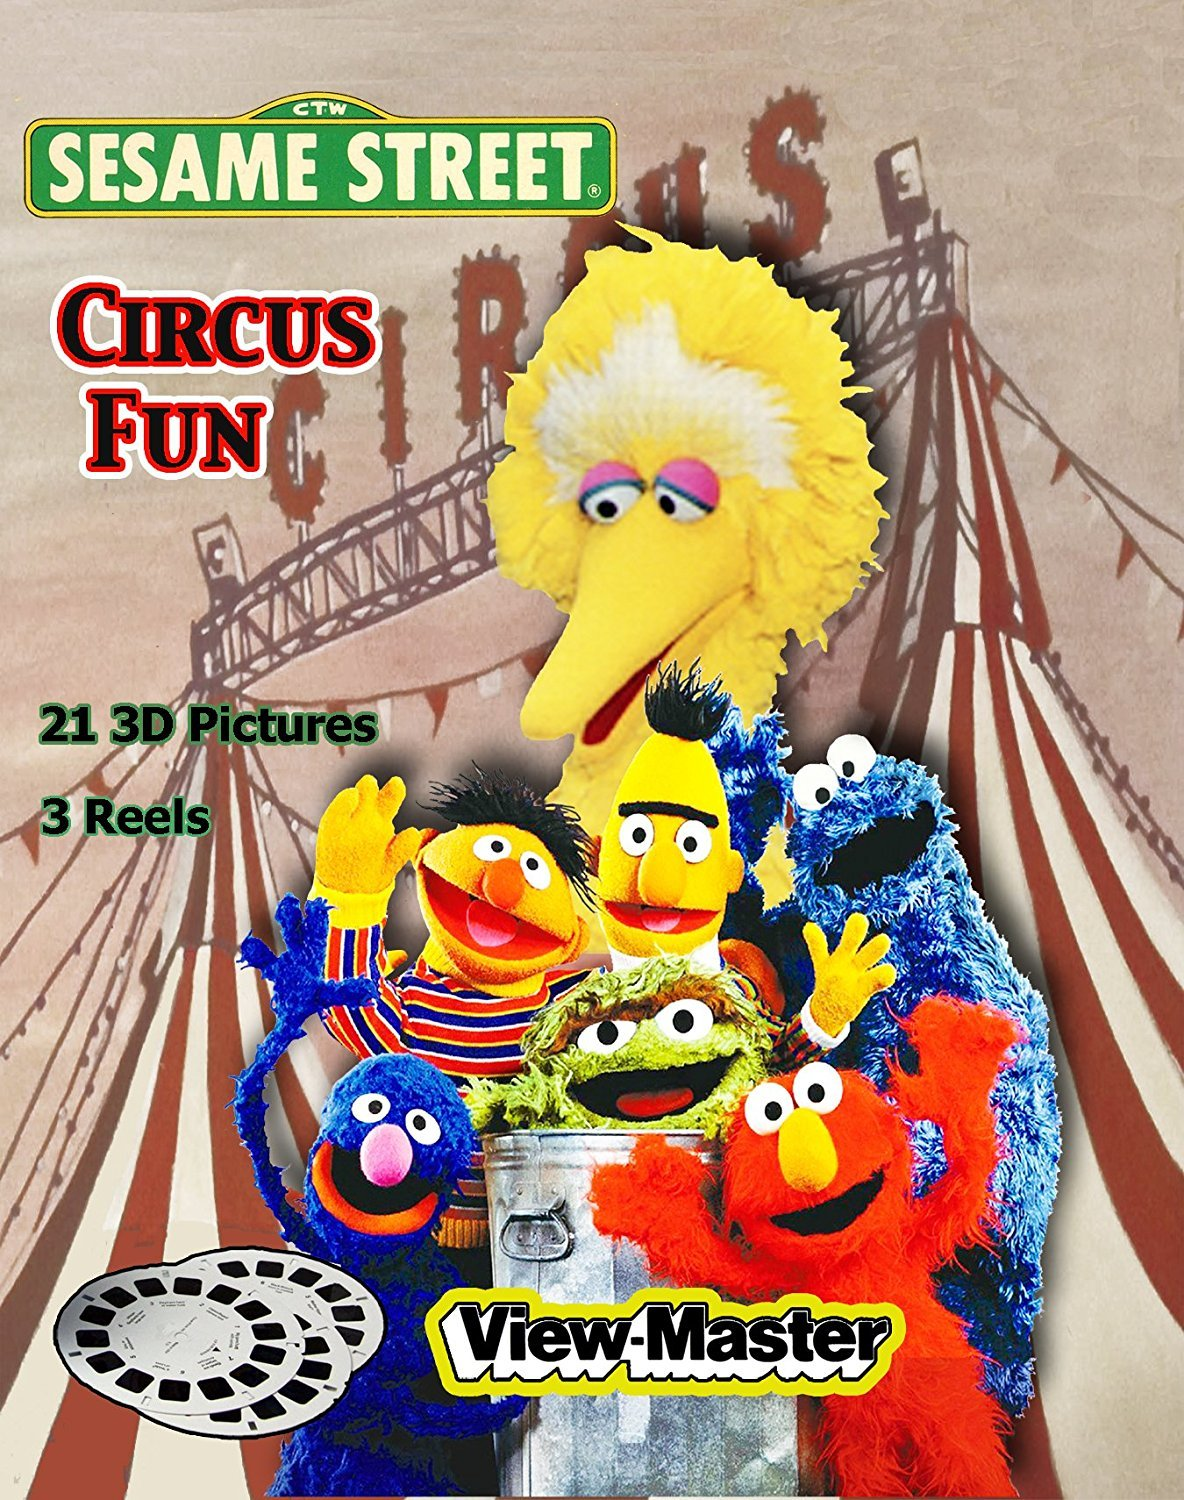 Sesame Circus Fun - 21 3D Images - Classic ViewMaster - 3 Reel Set - Bert, Elmo, Ernie, Grover by 3Dstereo ViewMaster